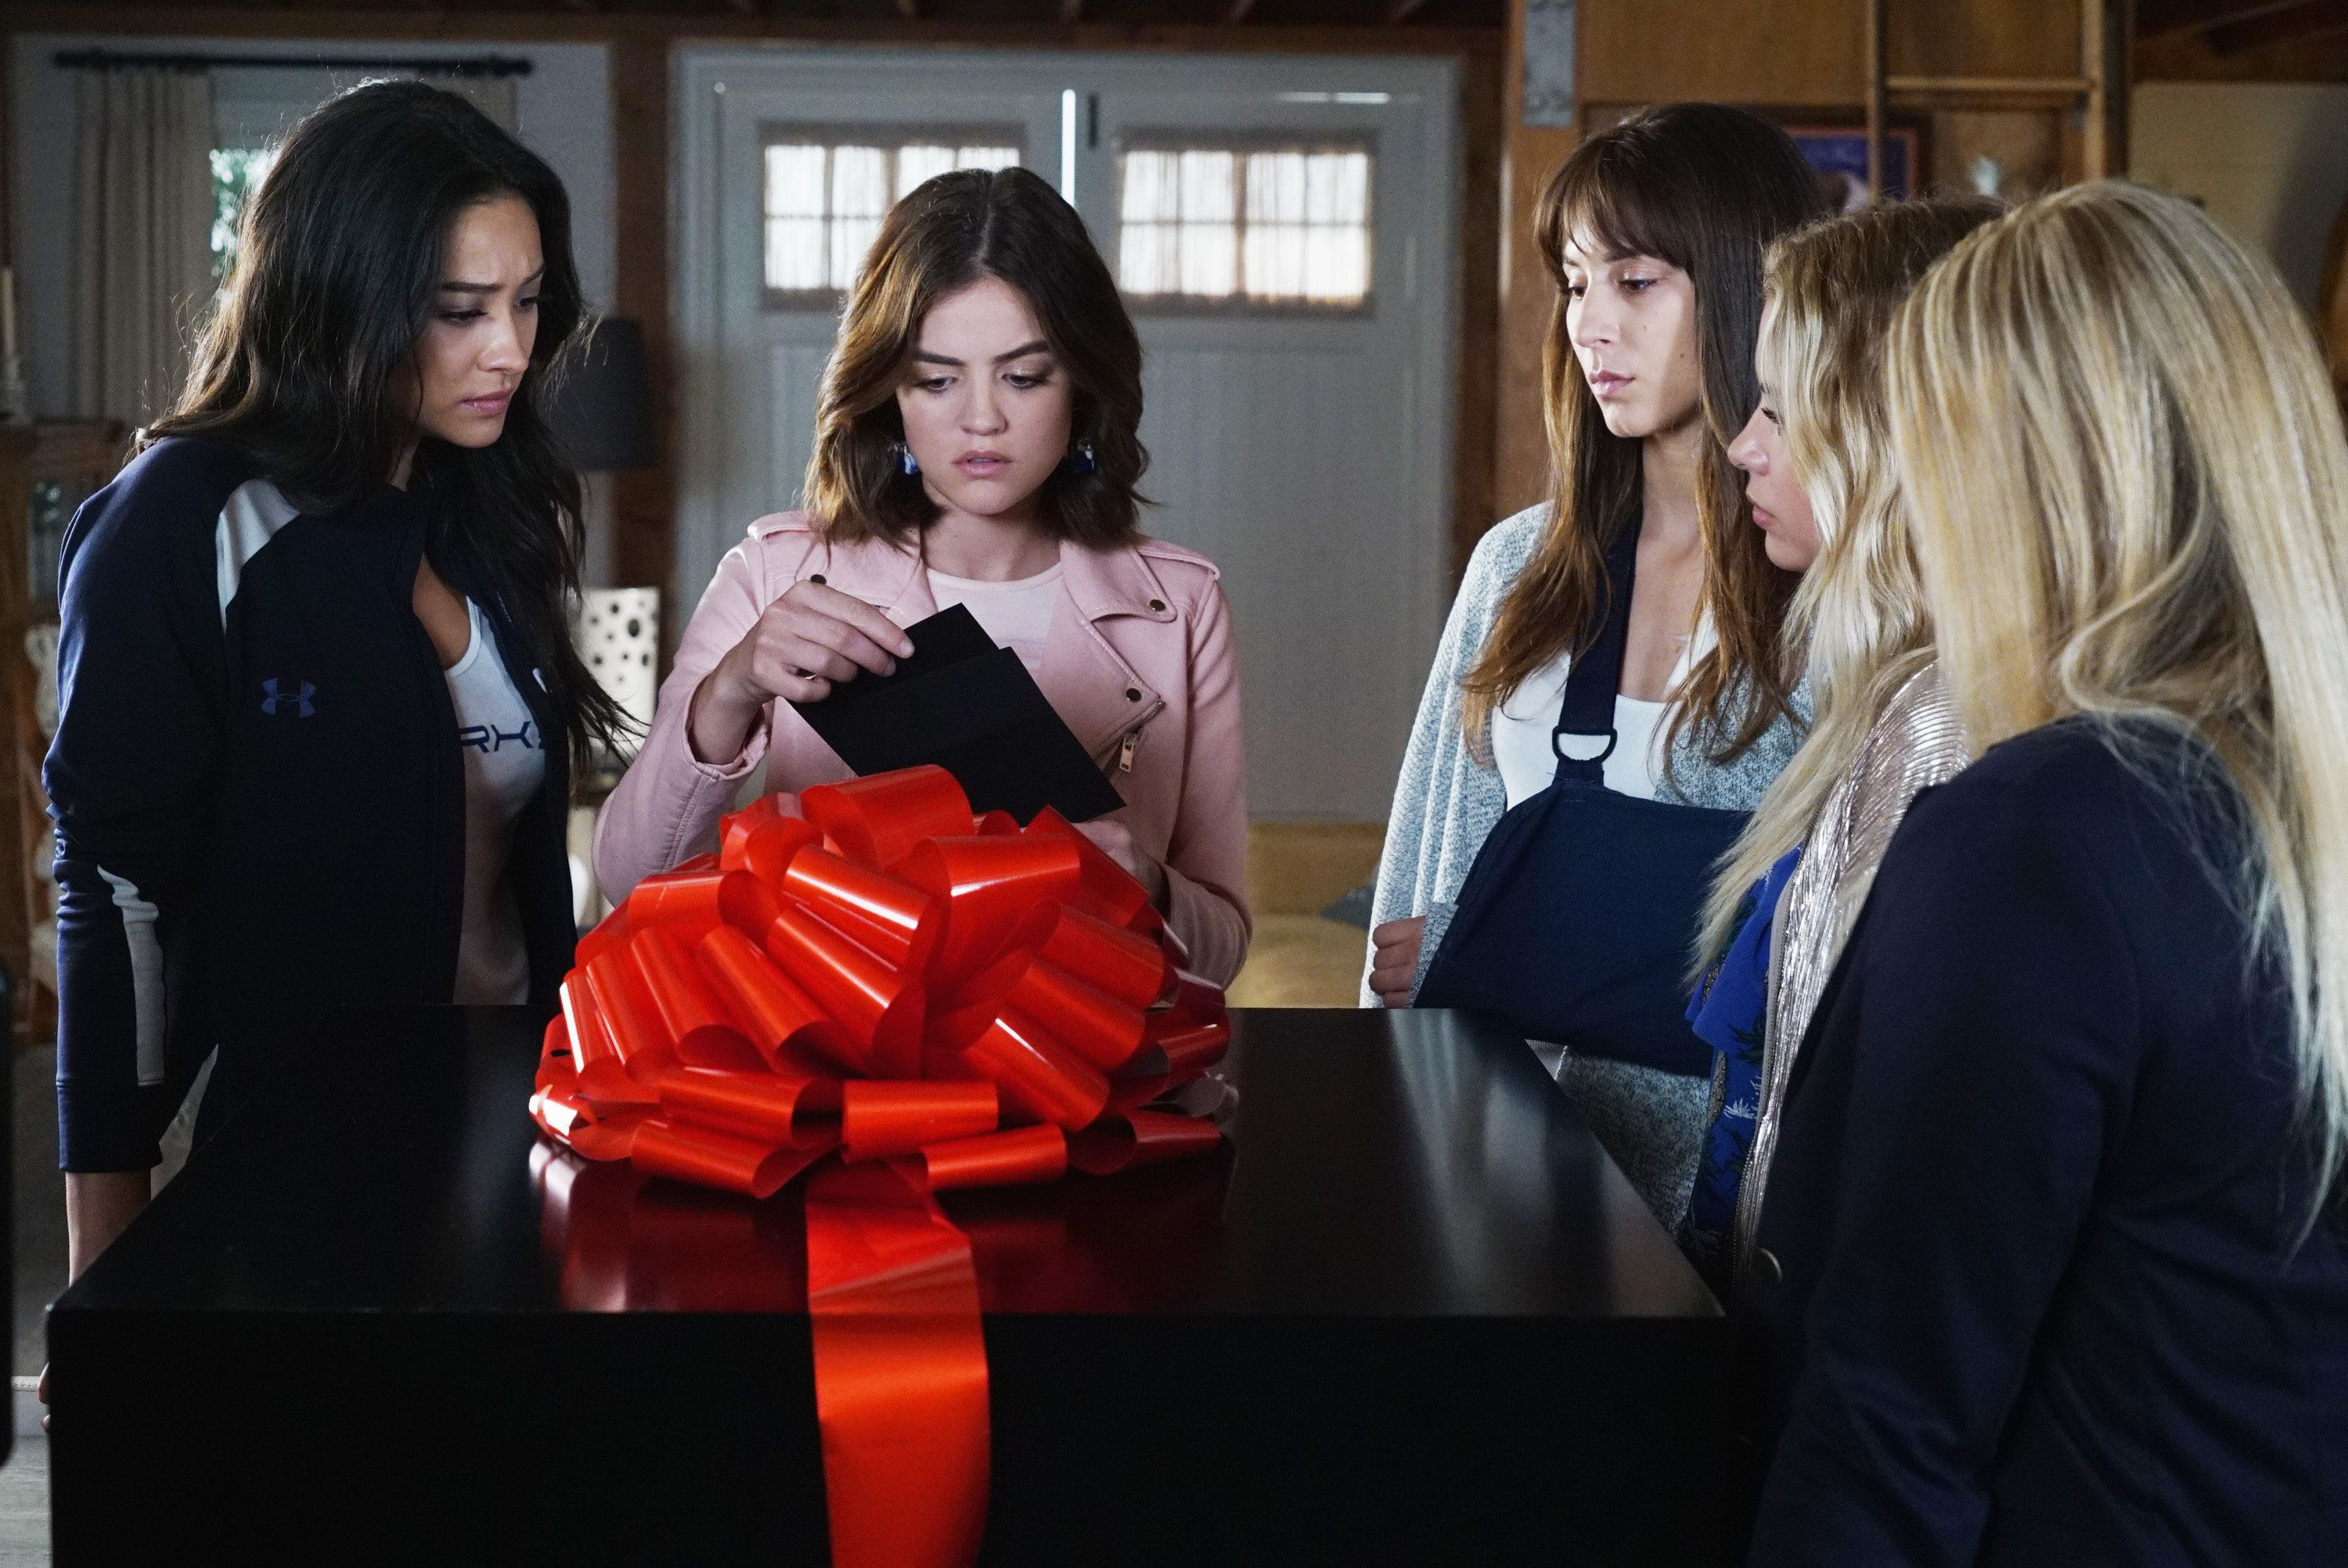 PRETTY LITTLE LIARS - 'PlAytime' - After Noel Kahn's abrupt death, the Liars try putting their lives back together again in 'Playtime,' the first of the final ten episodes of Freeform's hit original series 'Pretty Little Liars,' airing TUESDAY, APRIL 18 (8:00 - 9:02 p.m. EDT). Fans can catch up on where the Liars left off with an all-day marathon of season seven starting at 11:00 a.m. EDT and running up to the one-hour spring premiere at 8:00 p.m. EDT. (Eric McCandless/Freeform via Getty Images) SHAY MITCHELL, LUCY HALE, TROIAN BELLISARIO